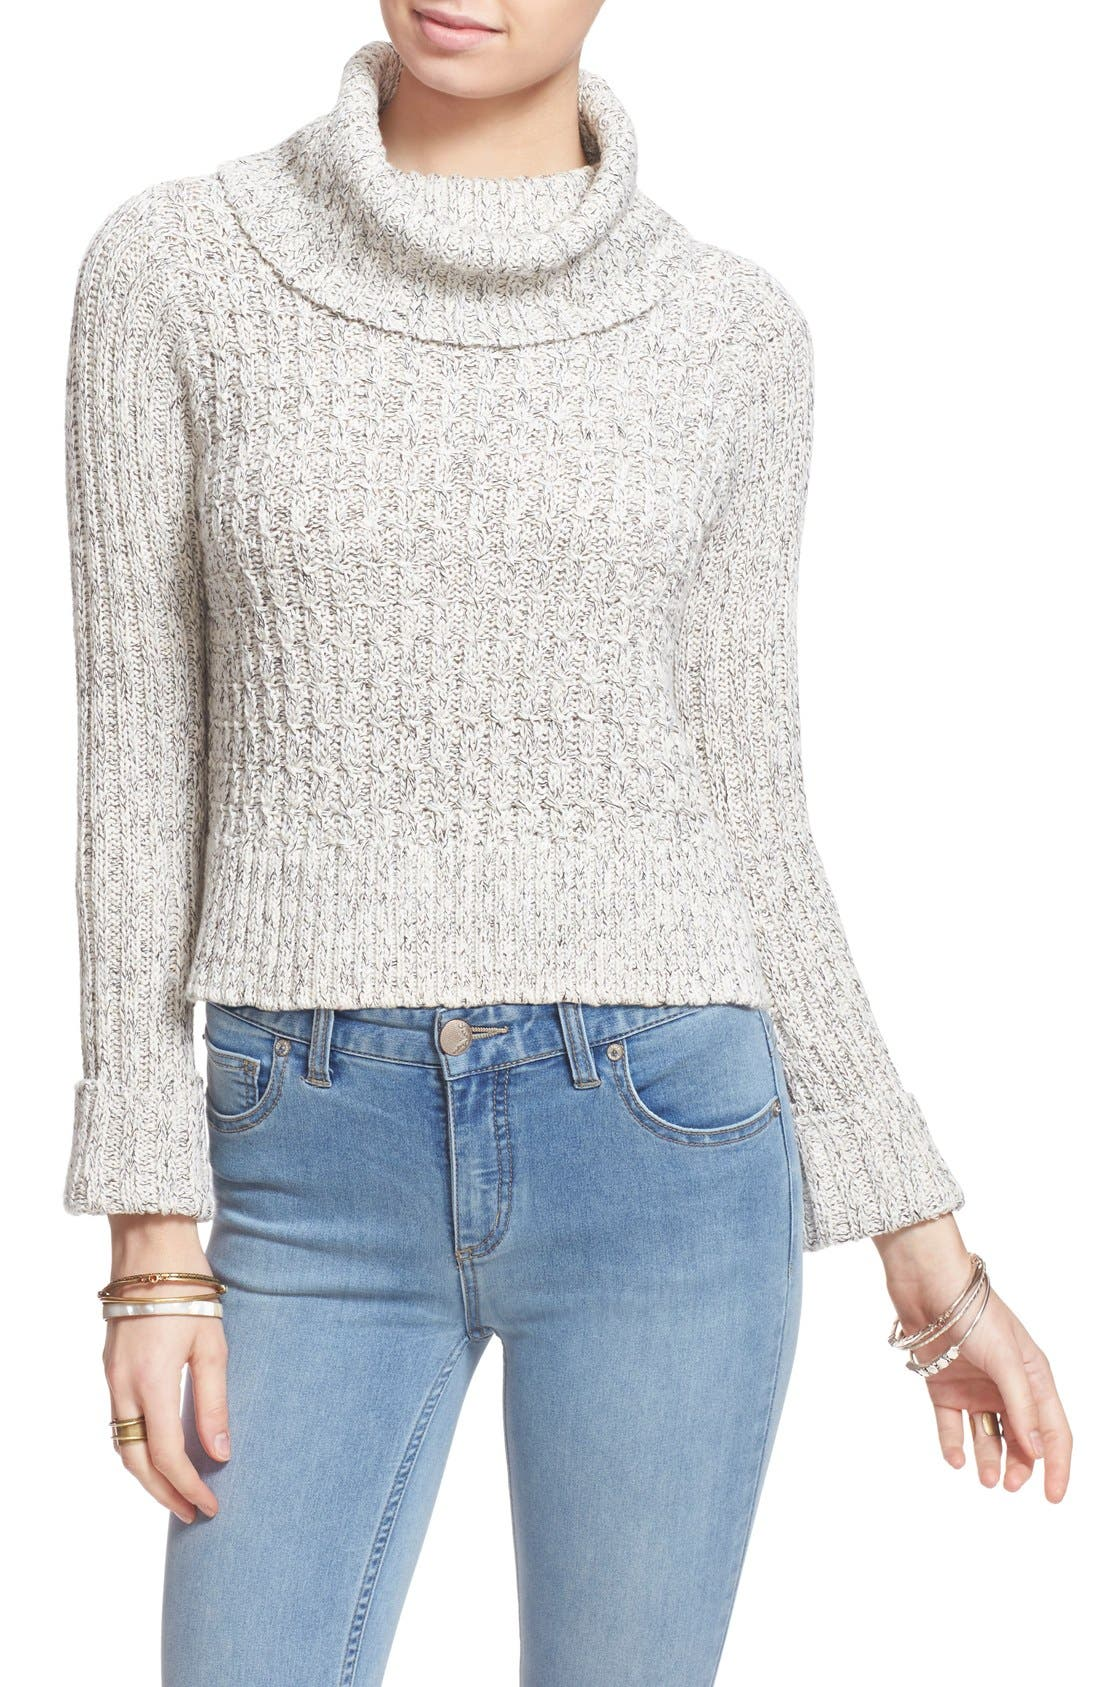 Main Image - Free People 'Twisted Cable' Turtleneck Sweater